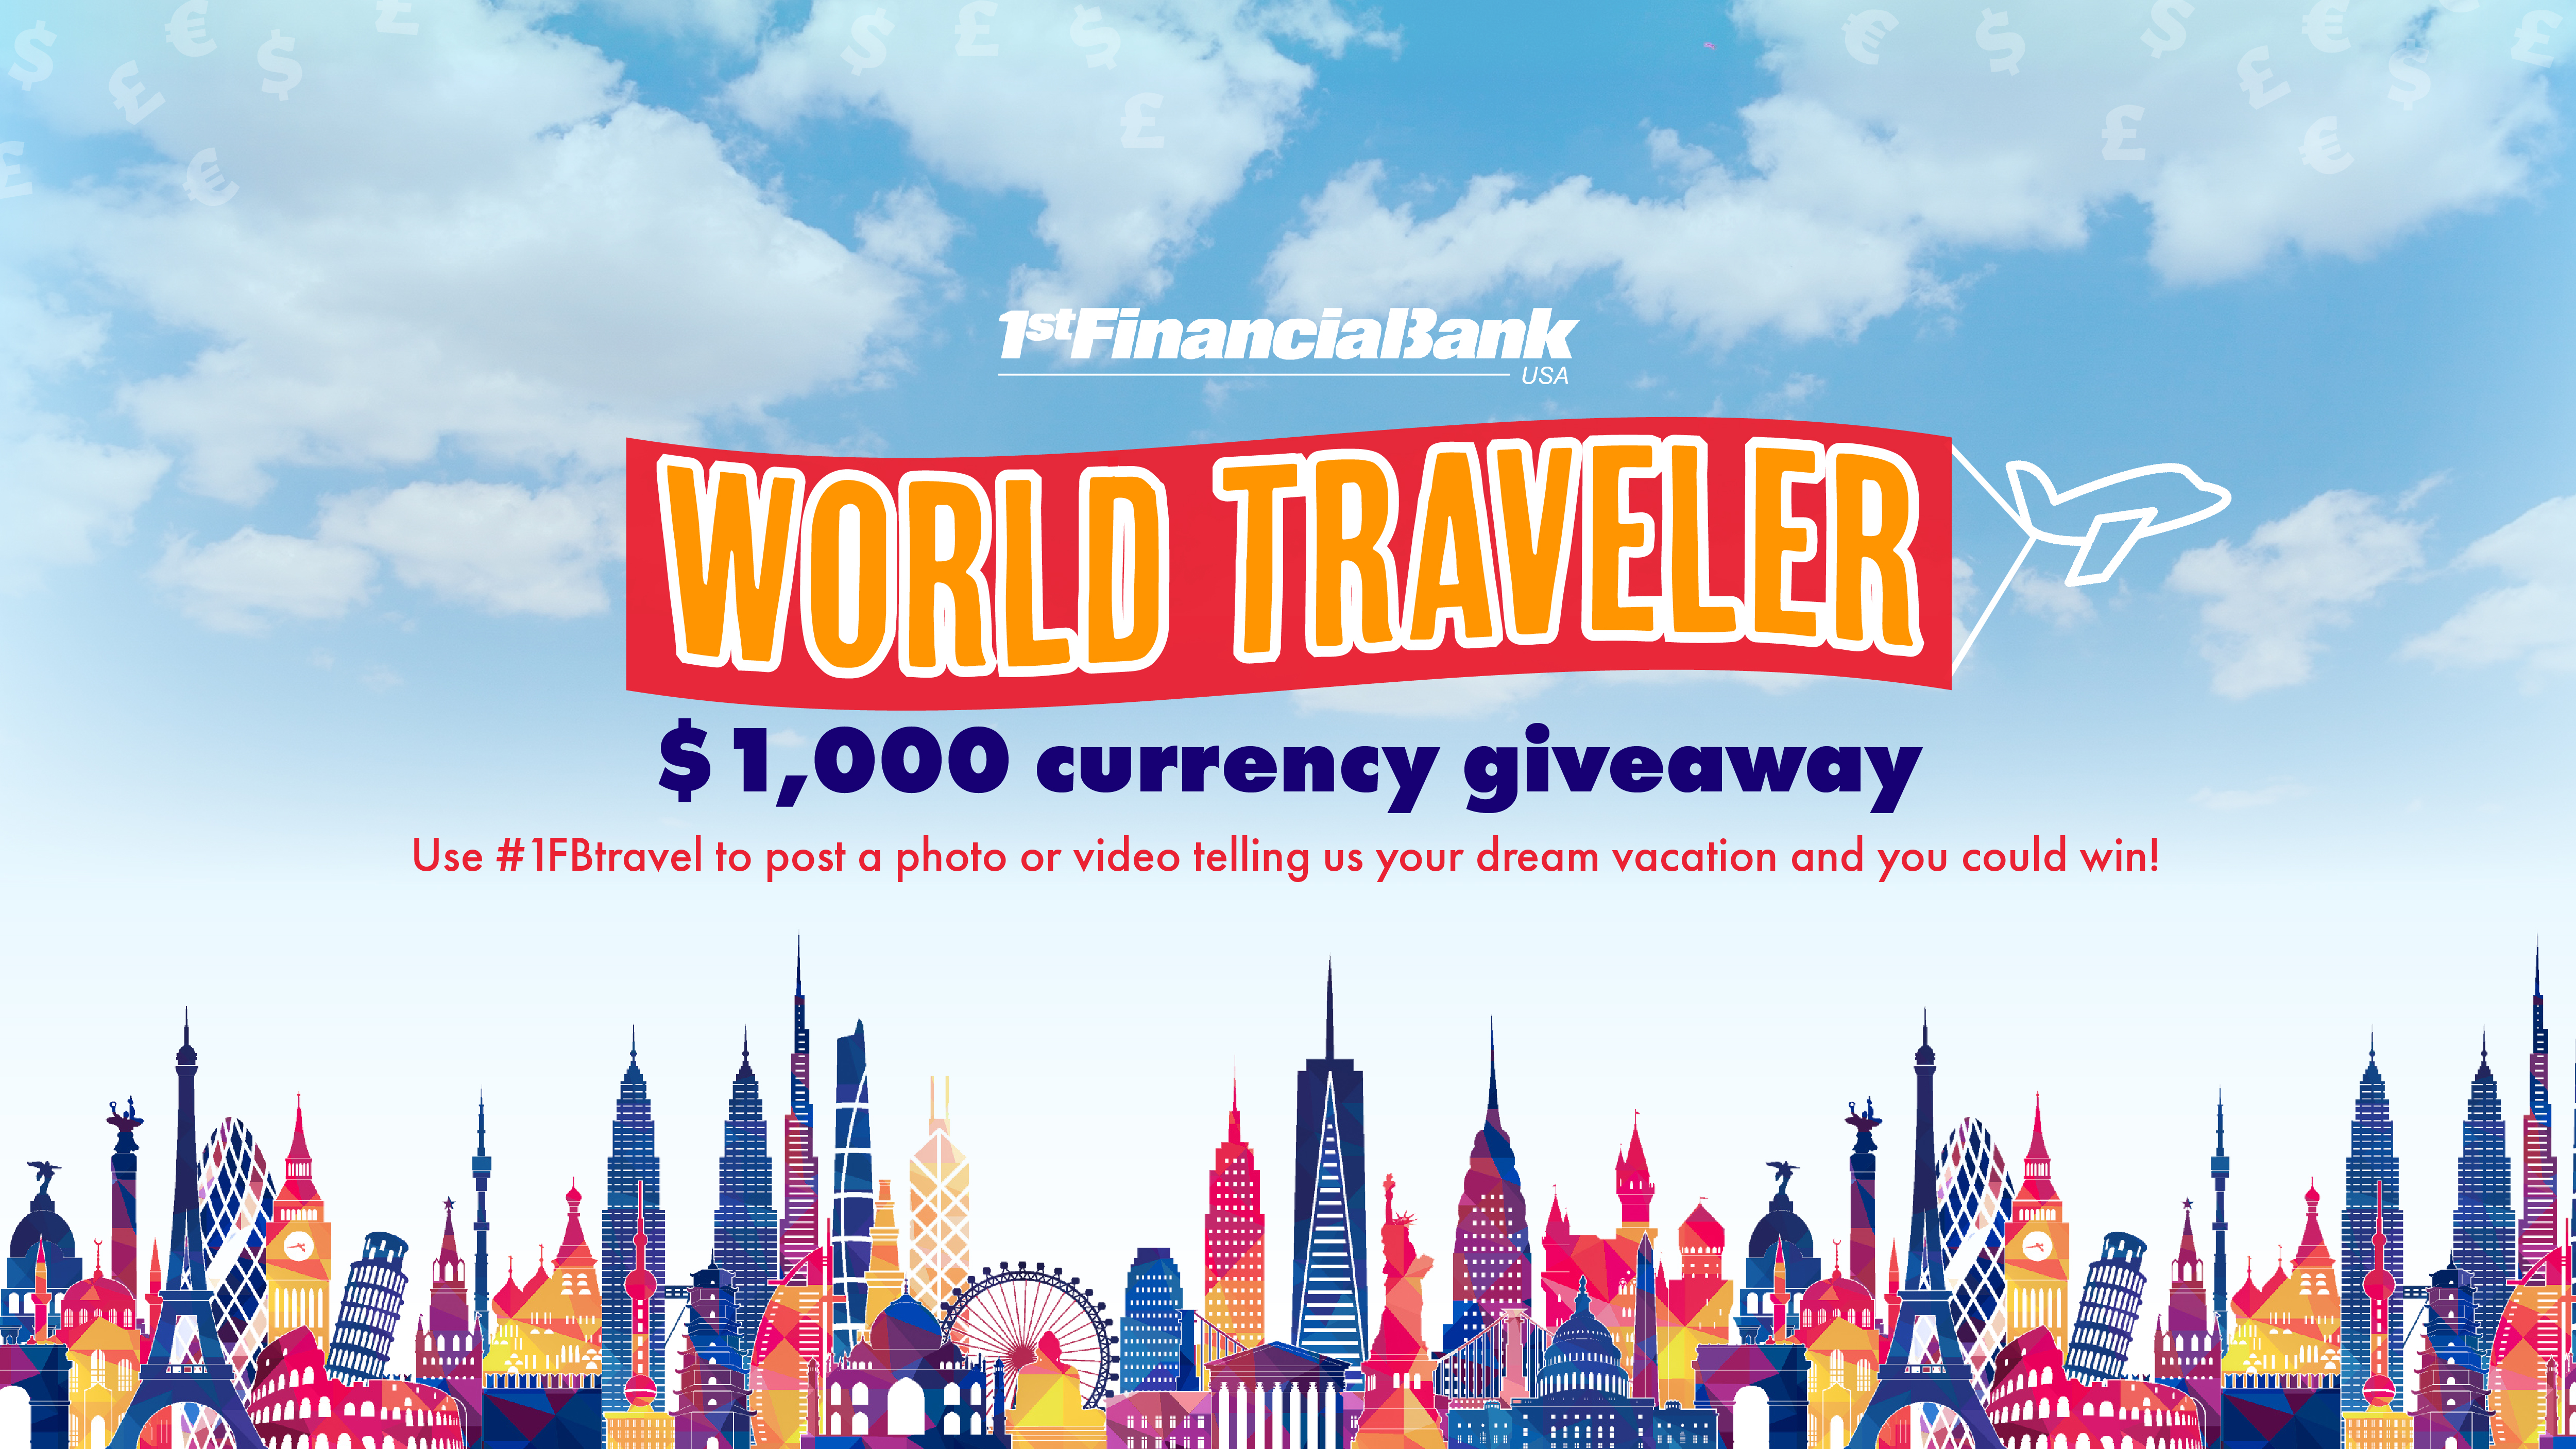 World traveler $1,000 currency giveaway